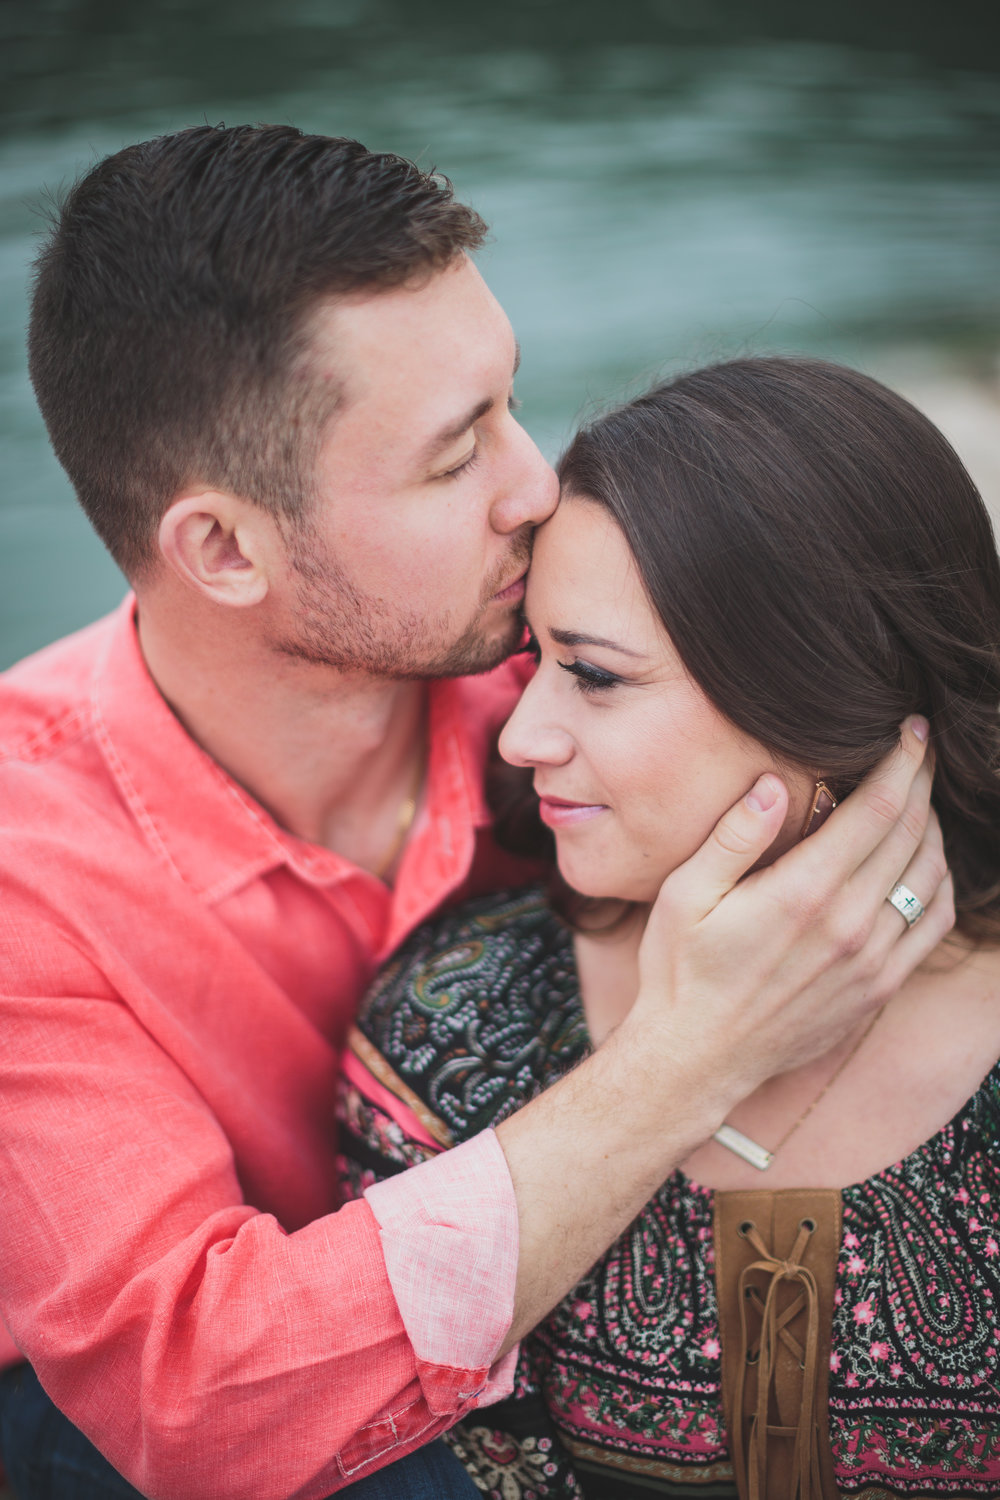 pedernales_engagement_session_9